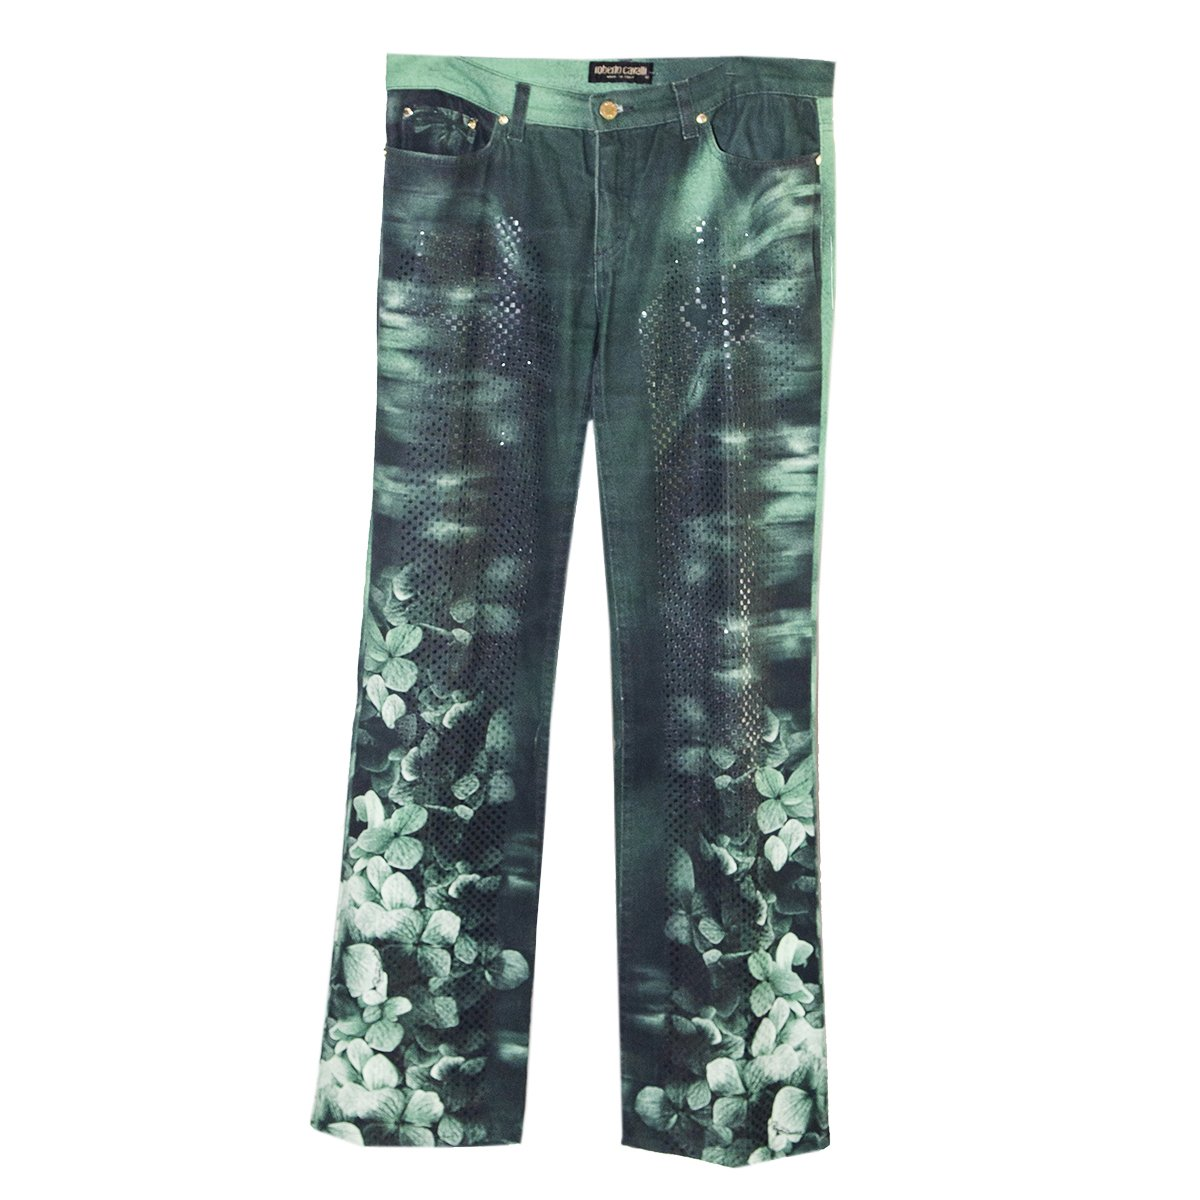 Vintage 90s Roberto Cavalli Green Floral Jeans, Sequins